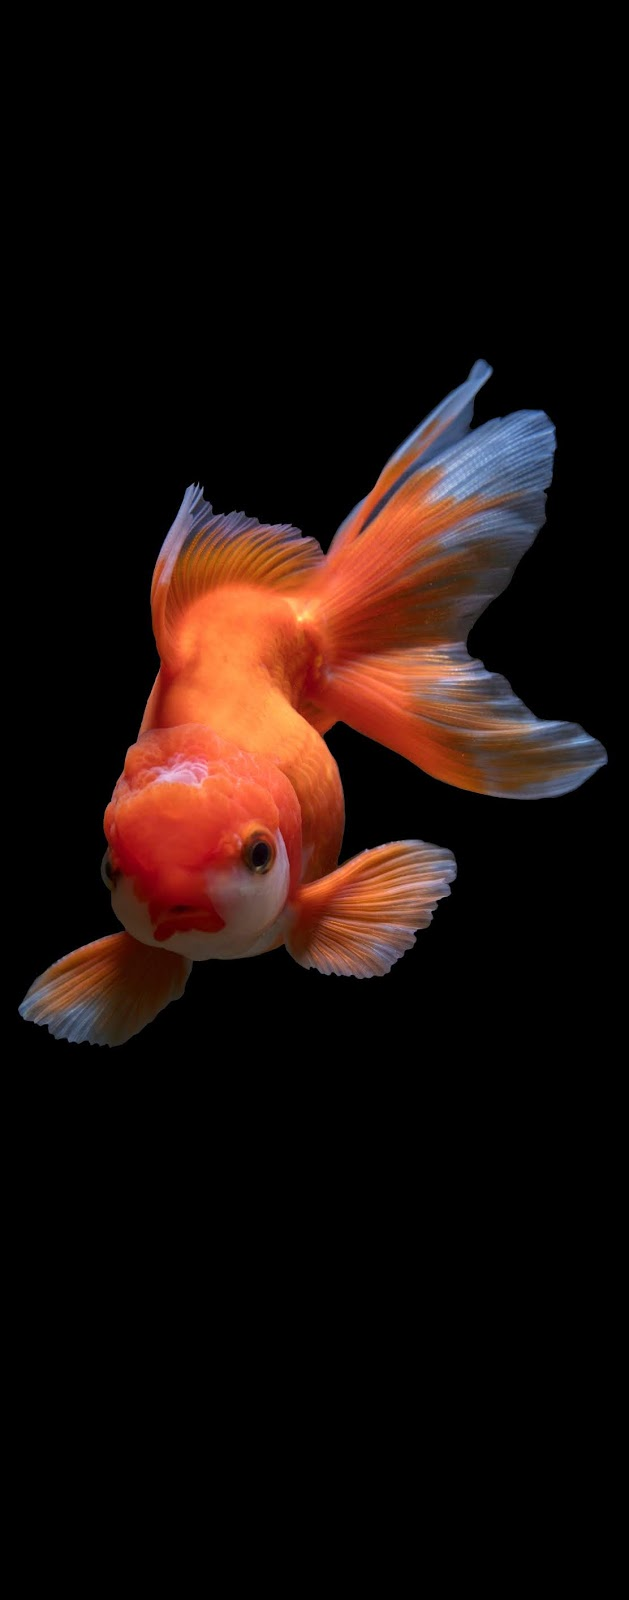 Photo of a goldfish.